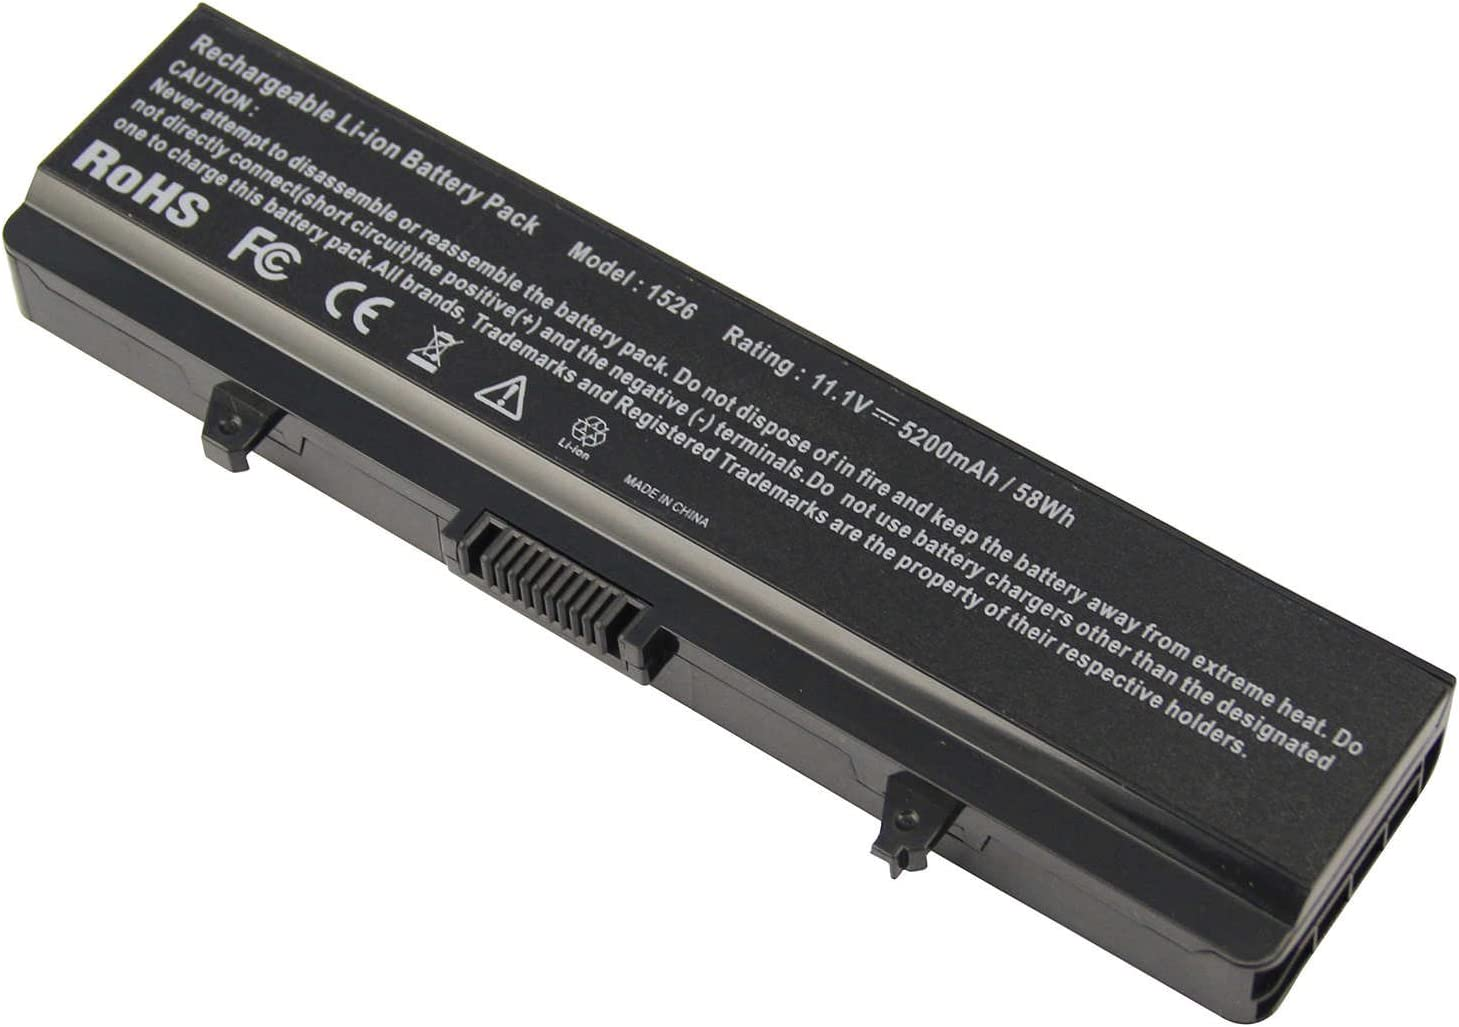 New Battery 58Wh for Dell Inspiron 1525 1526 1545 PP29L PP41L PN GW240 RN873 GP952 M911G X284G K450N RU586 G555N 0F965N OF965N XR693 C601H D608H GW252 HP297 for Dell 1440 1750 Laptop